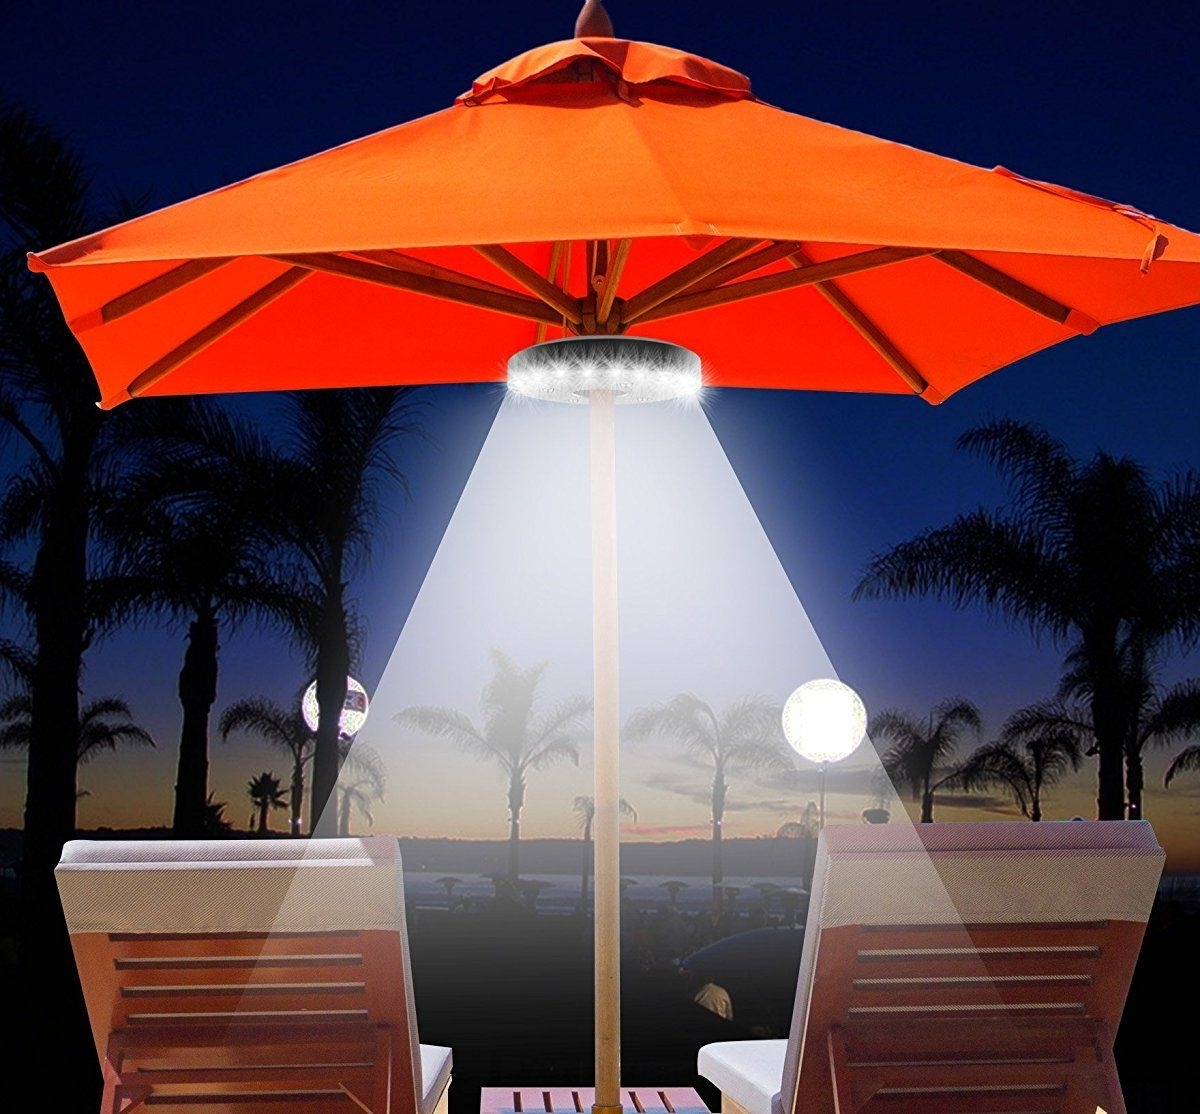 Patio Umbrella Lights Within Well Known Qpau Patio Umbrella Light, 3 Lighting Modes Cordless 28 Led Lights (View 17 of 20)